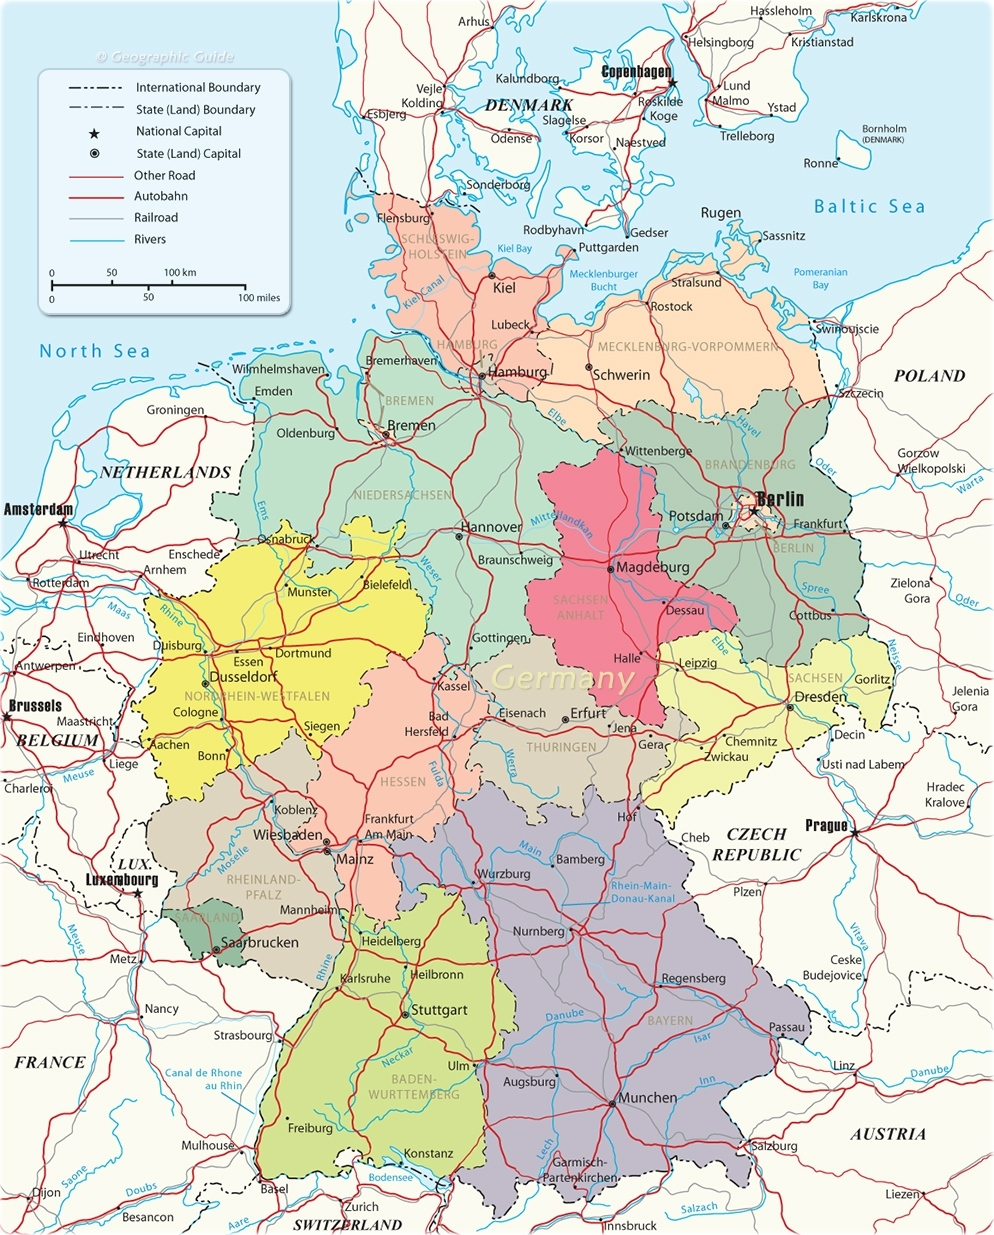 Autobahn Map In Germany within Autobahn Road Map Germany